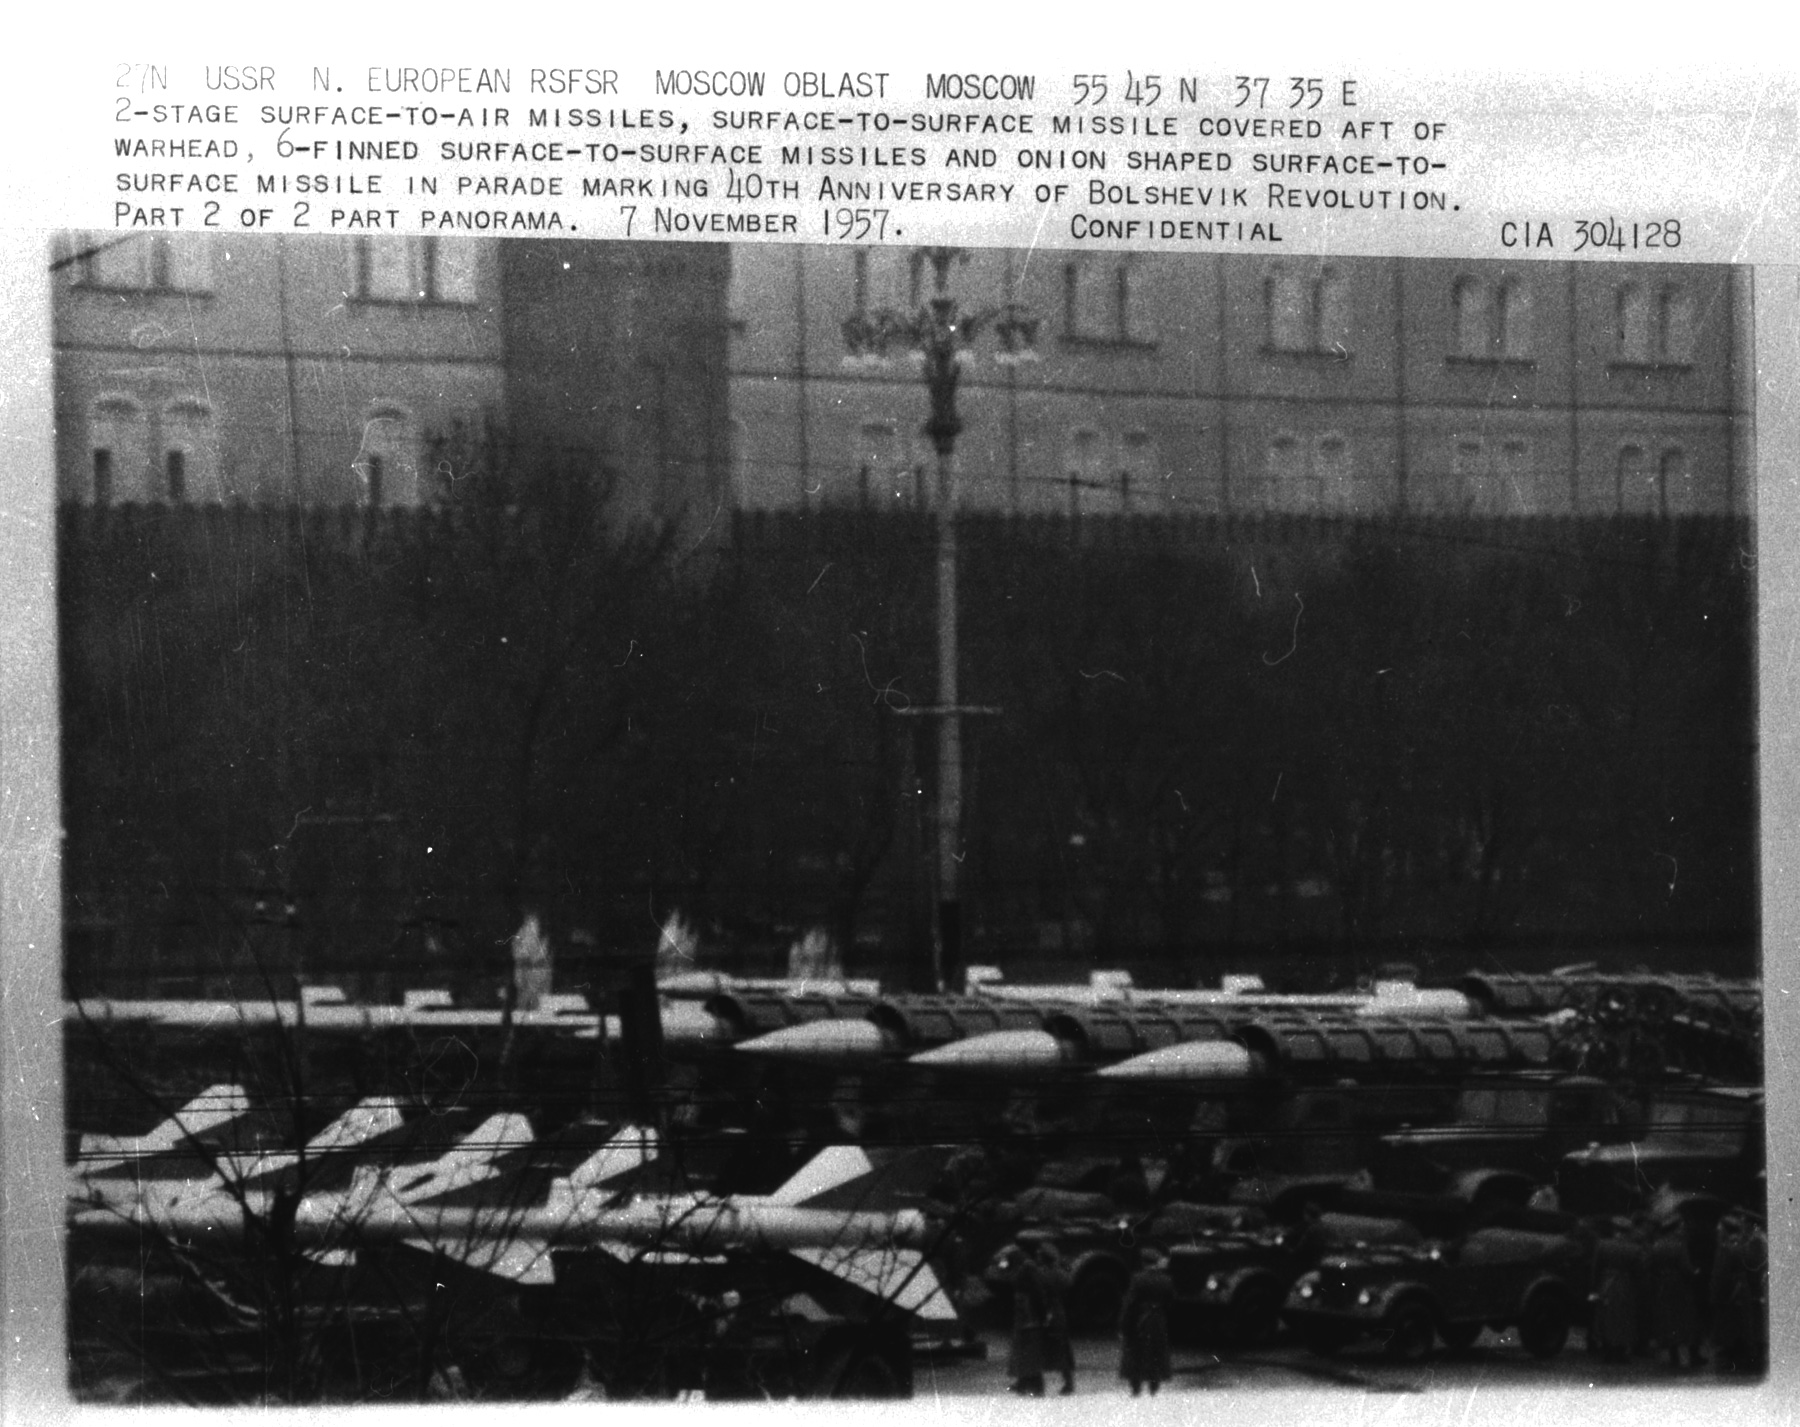 Moscow parade photos from Nov 7, 1957